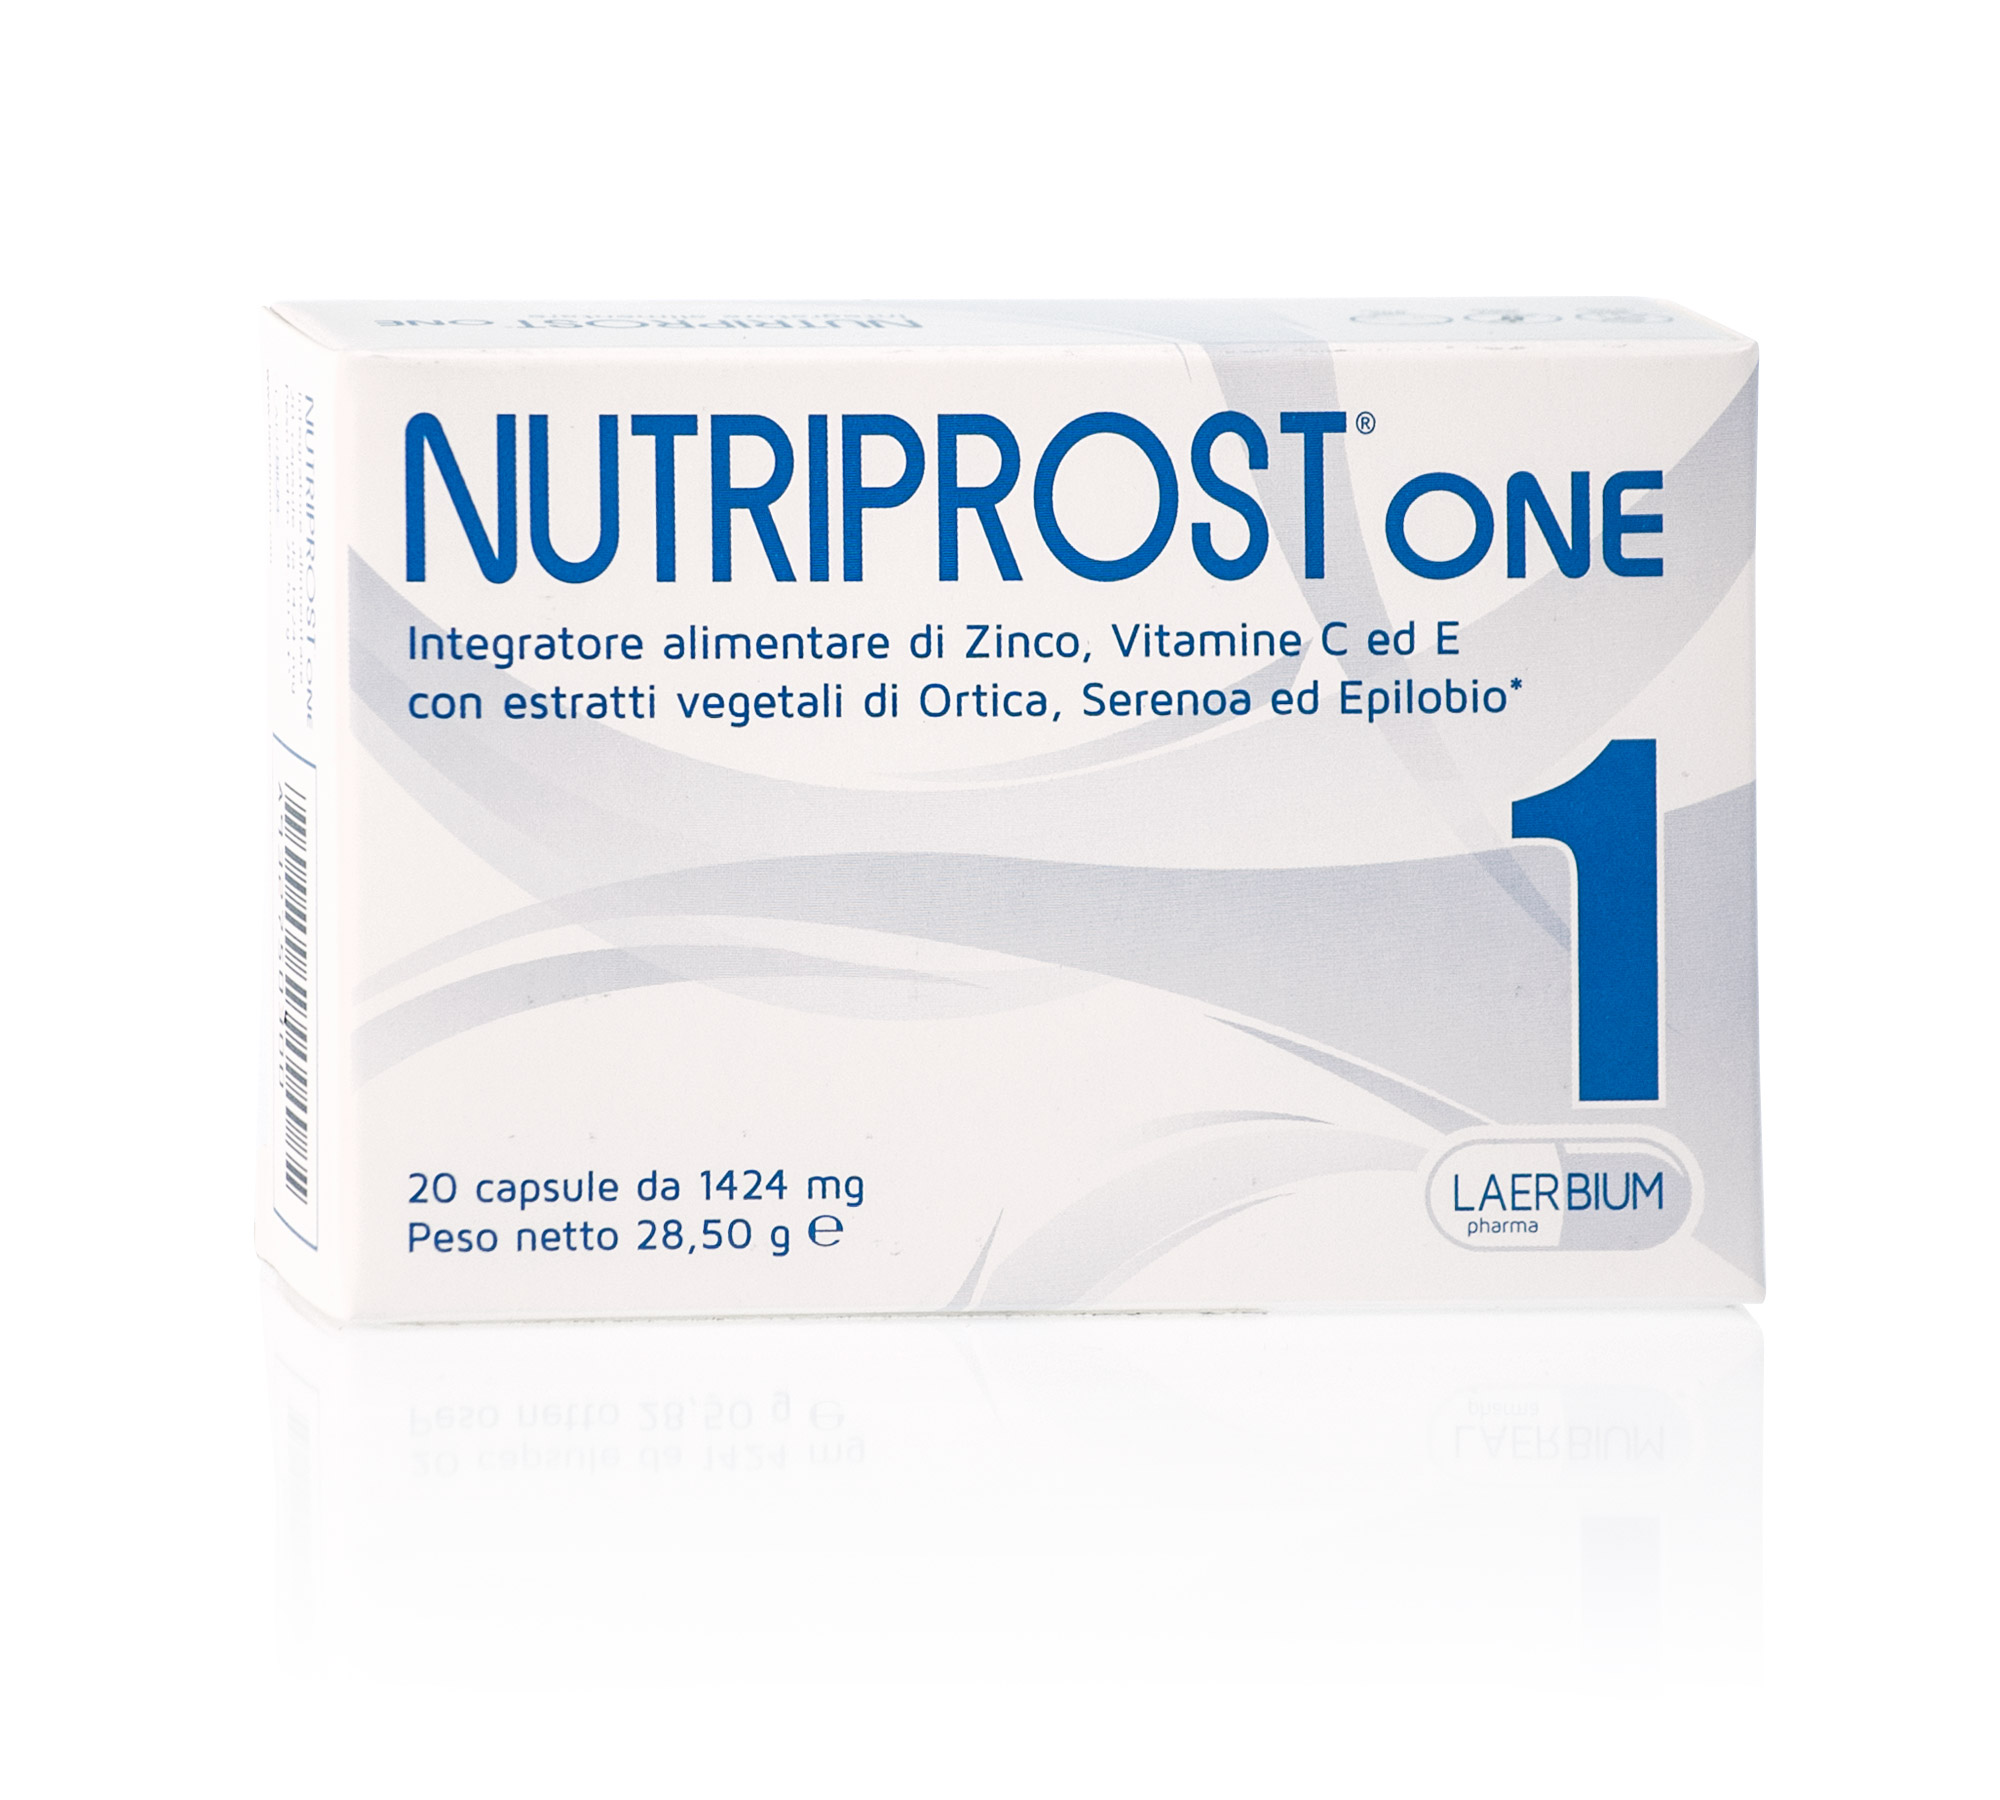 Nutriprost One